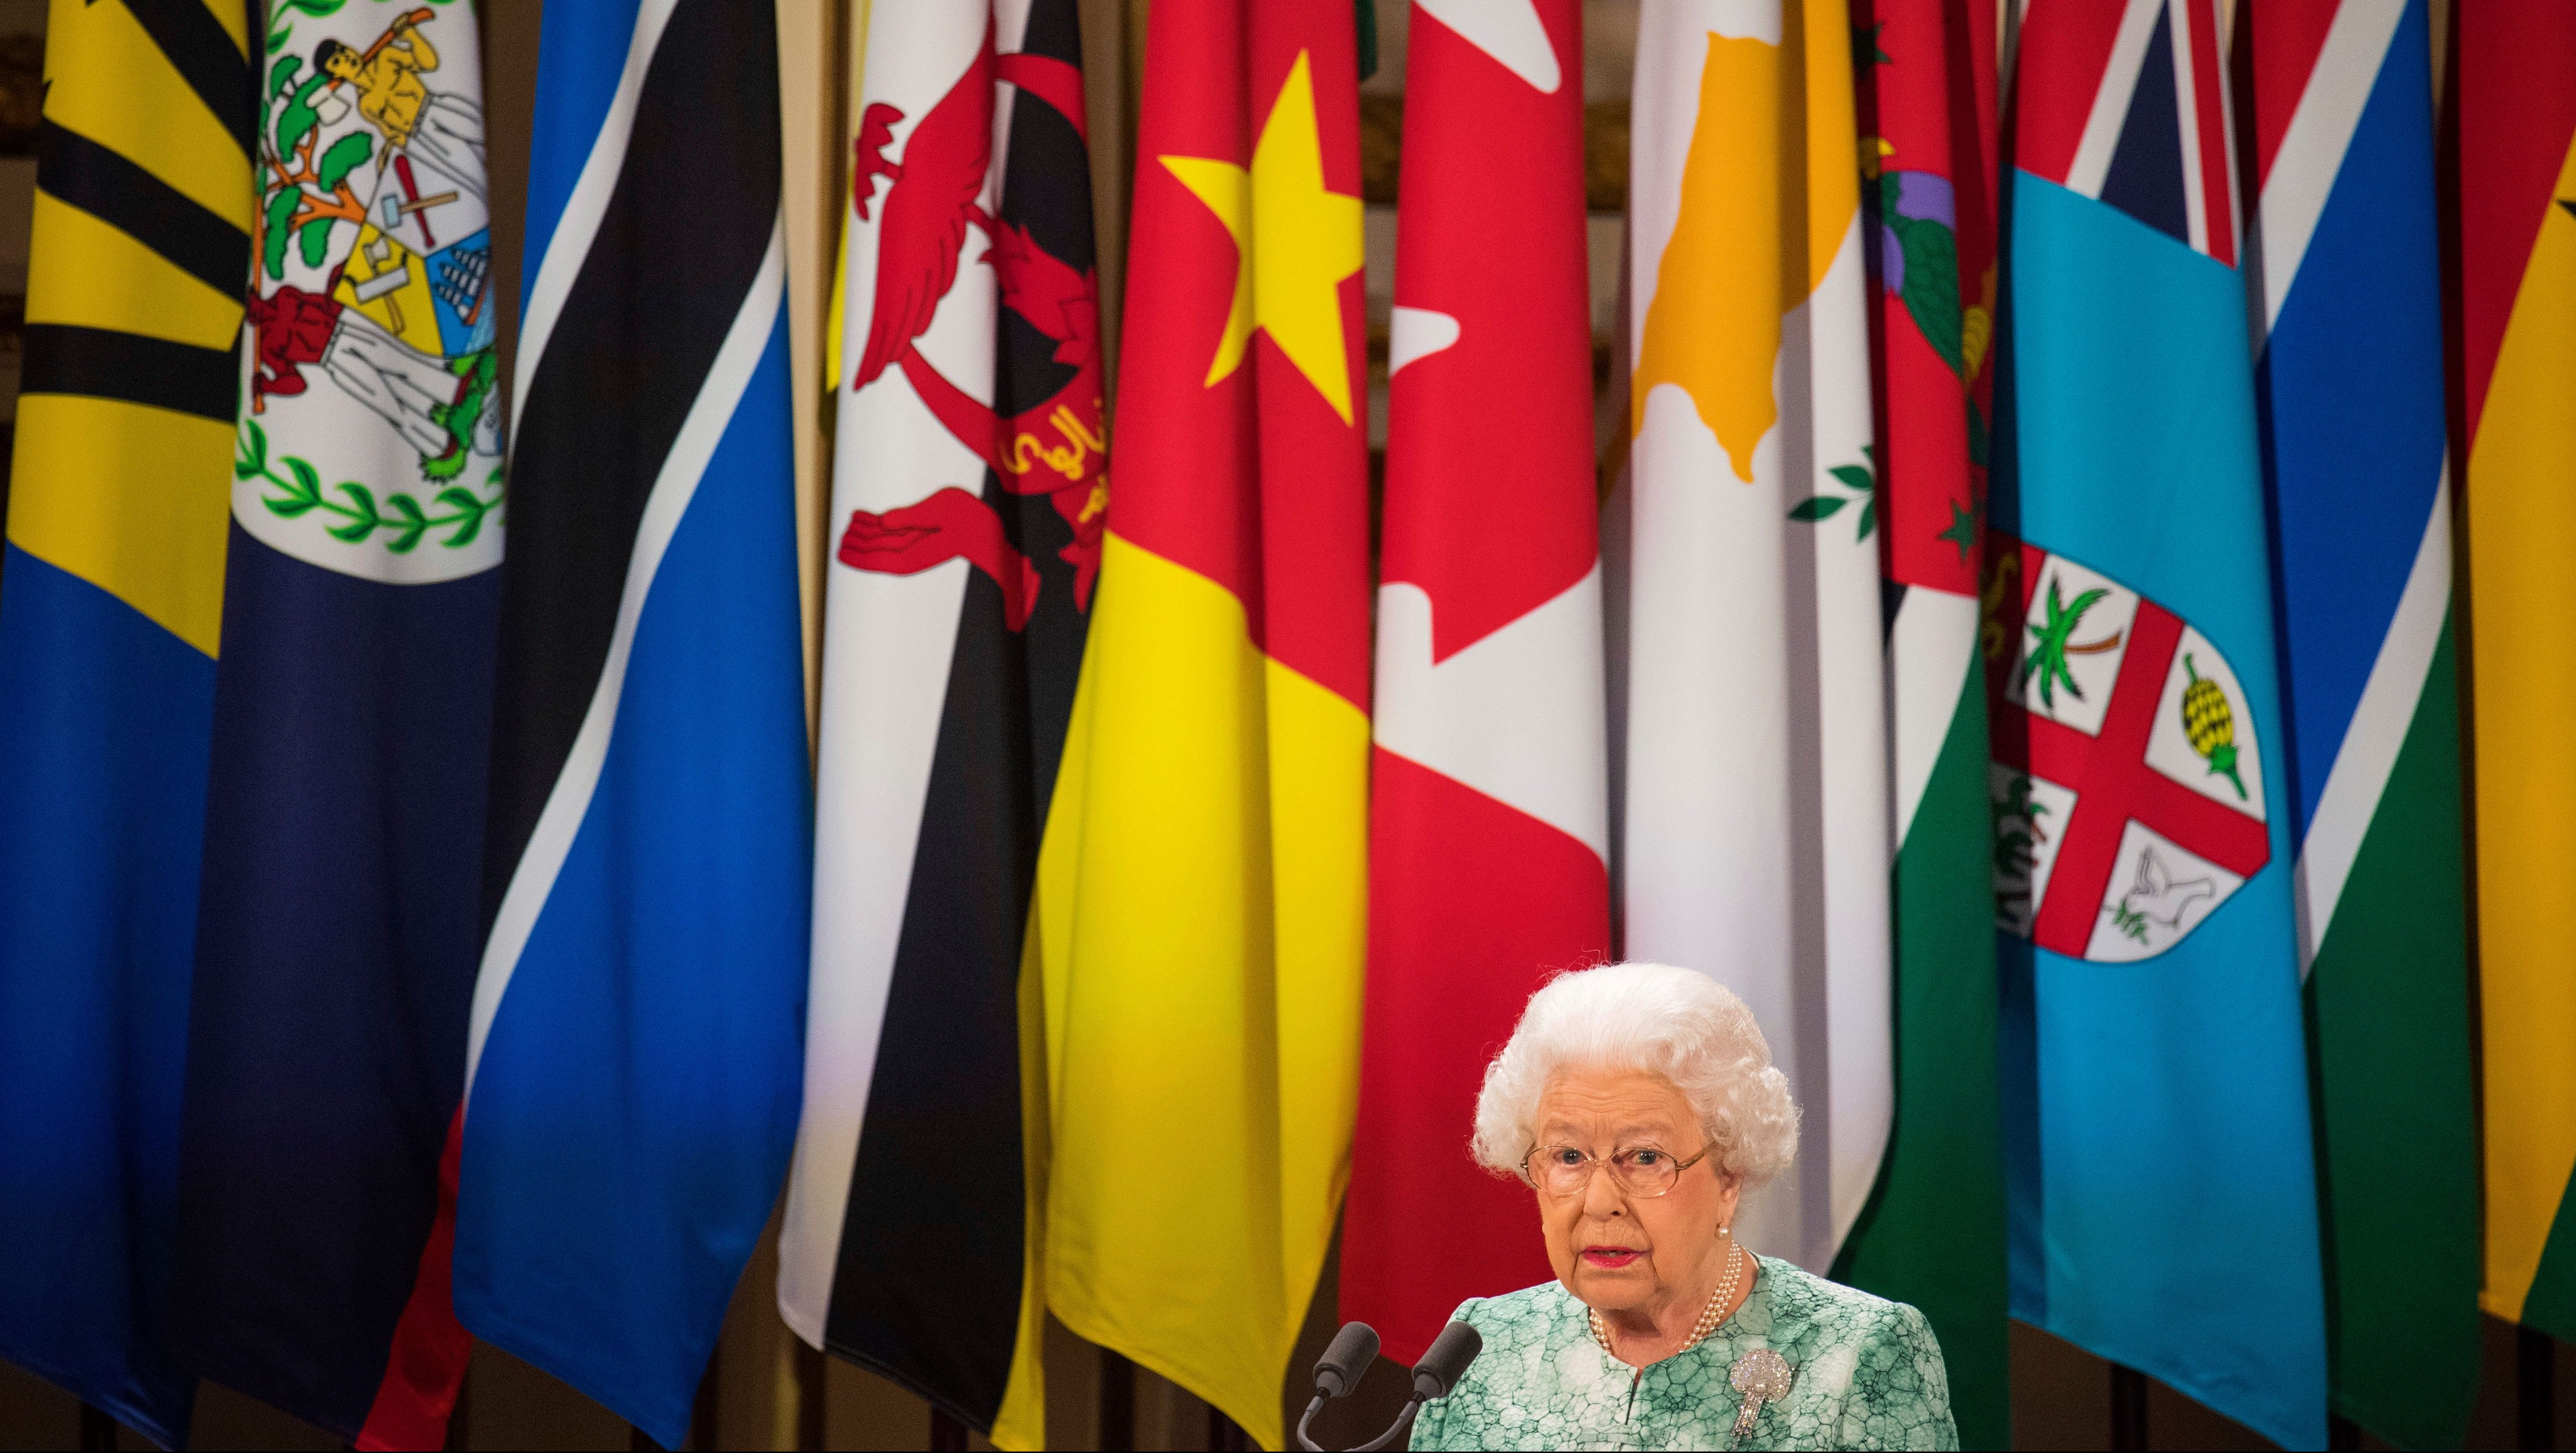 Britain's Queen Elizabeth II speaks during formal opening of the Commonwealth Heads of Government Meeting in the ballroom at Buckingham Palace in London, Thursday April 19, 2018.